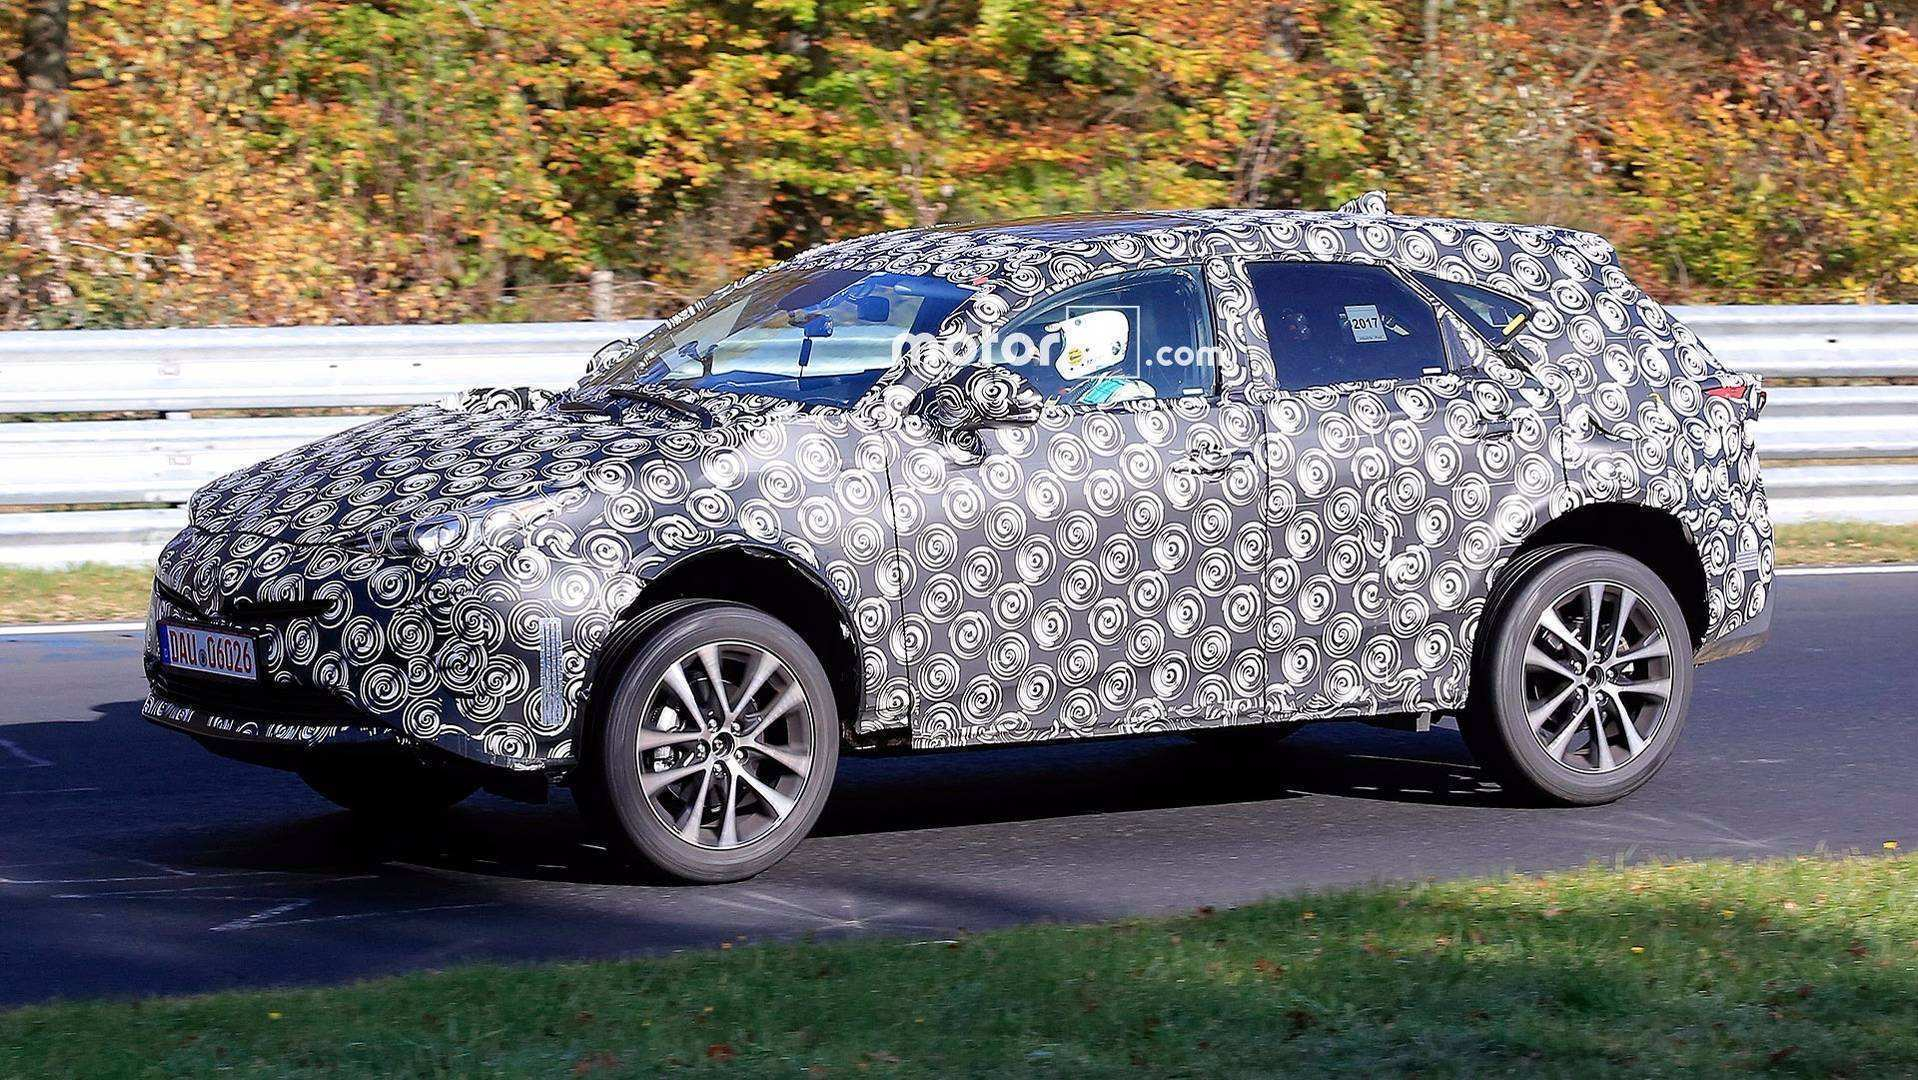 87 All New 2019 Spy Shots Toyota Prius Pricing